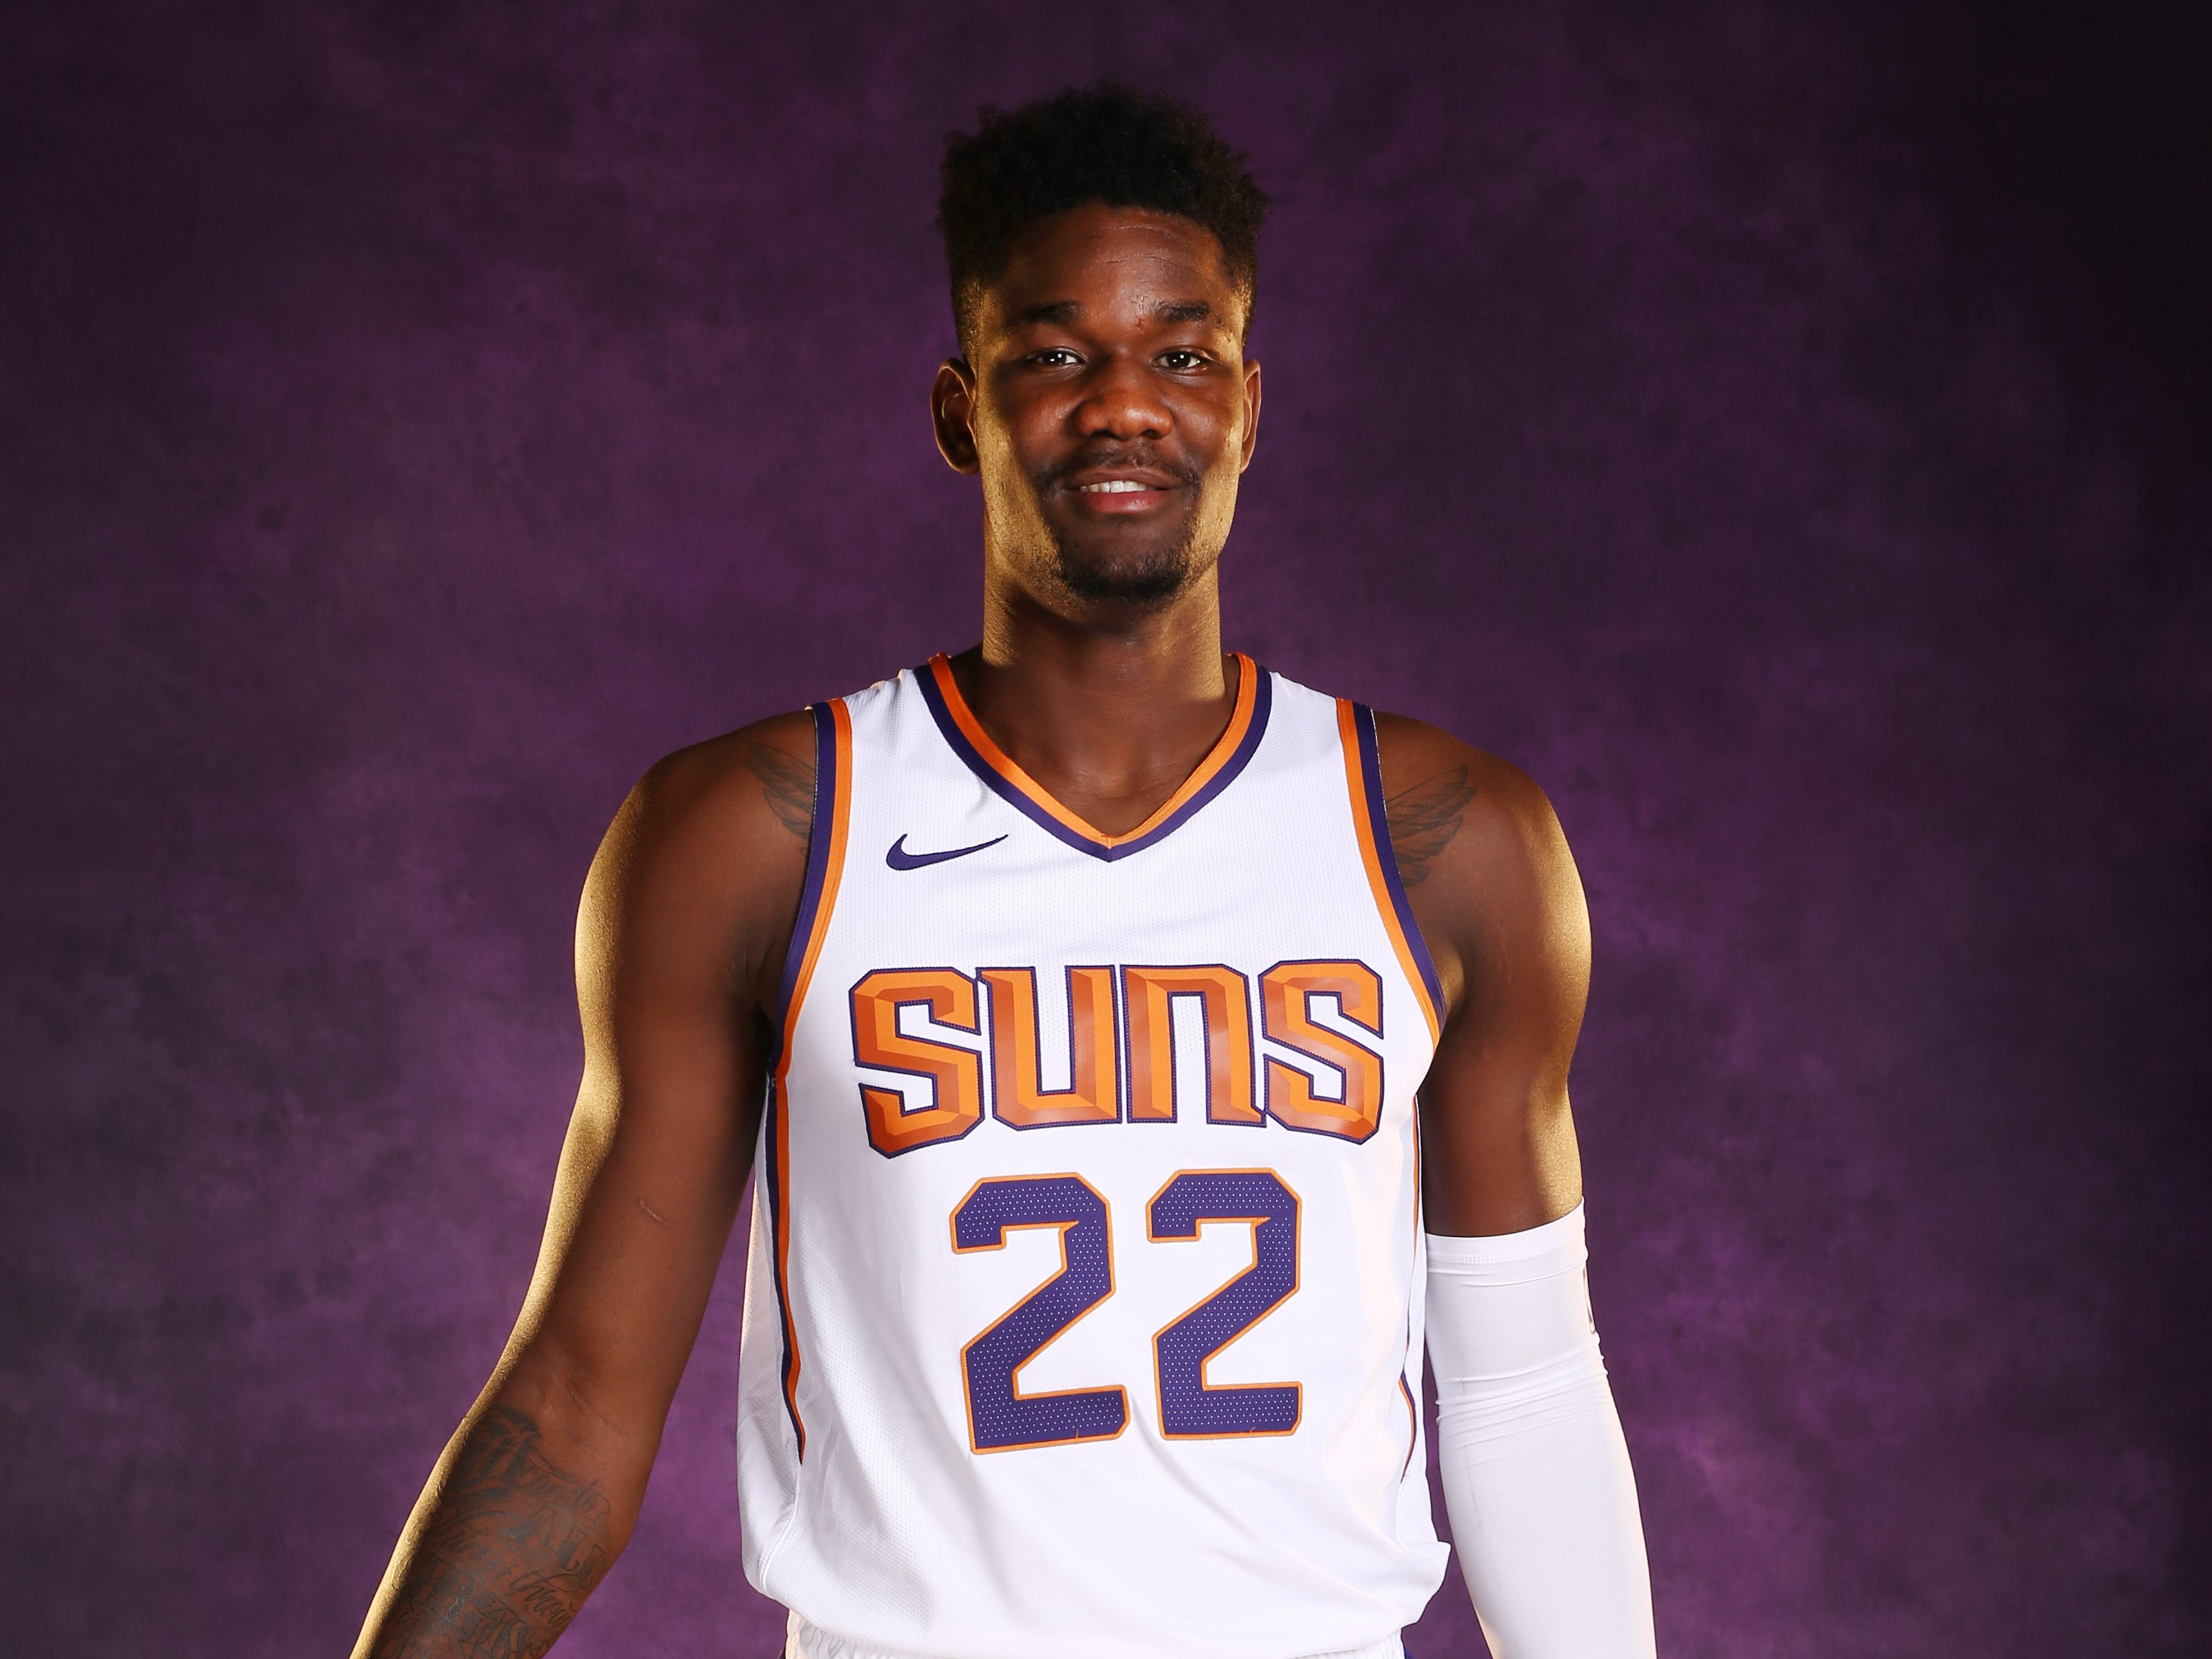 Phoenix Suns forward Deandre Ayton during media day at Talking Stick Resort Arena on Sep. 24, 2018, in Phoenix, Ariz.